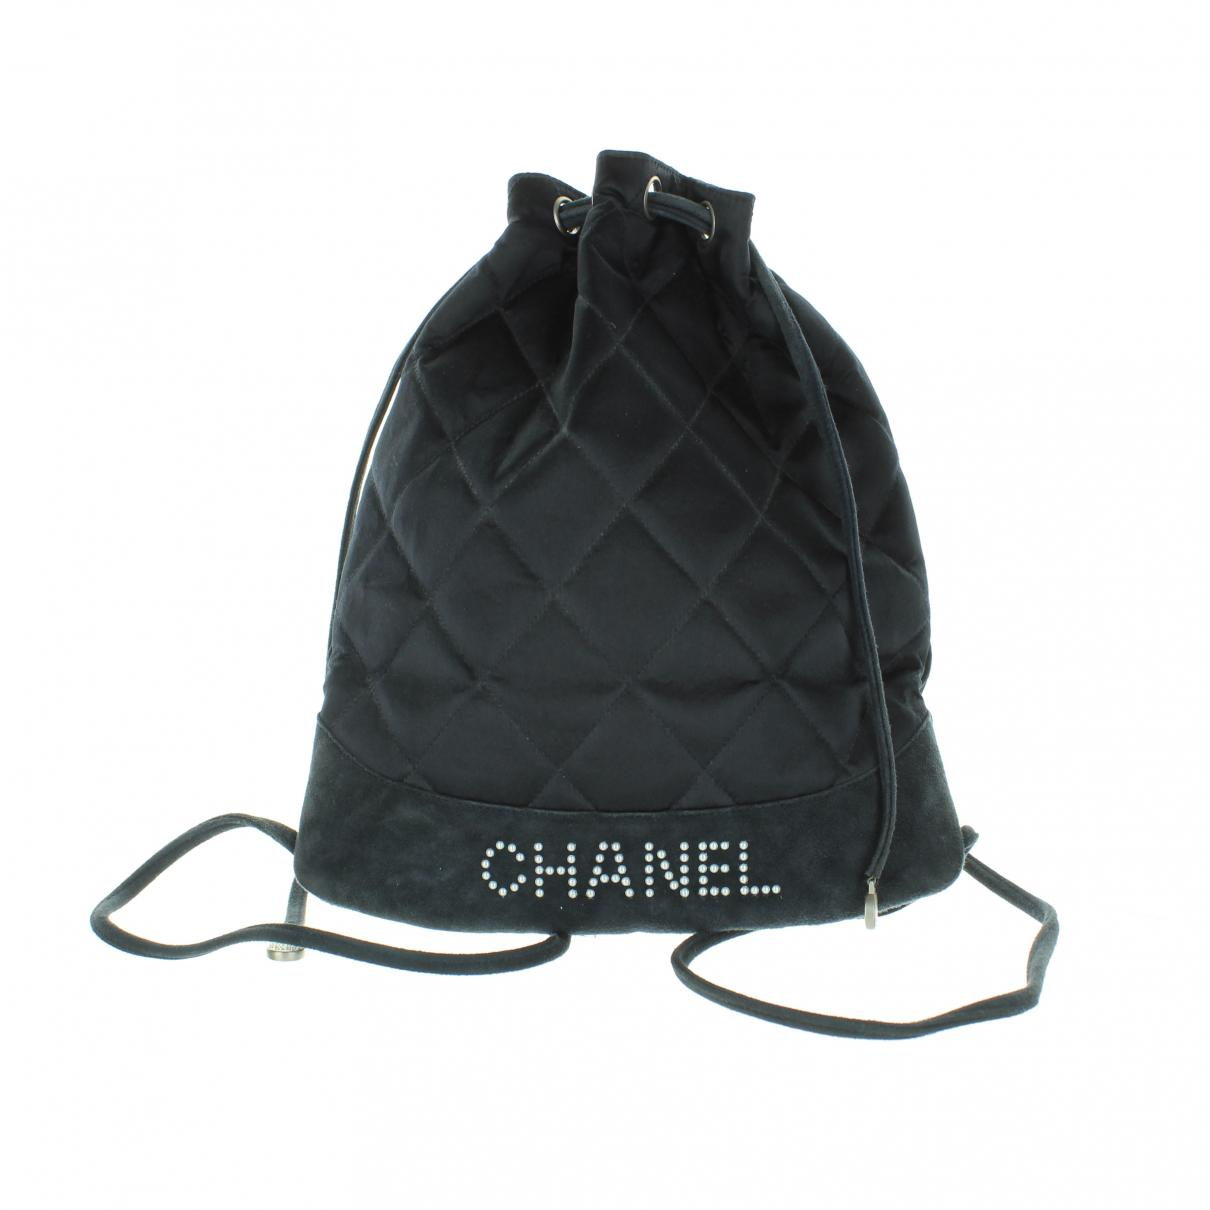 6cb93dc4f1fe Lyst - Chanel Navy Cloth Backpacks in Blue